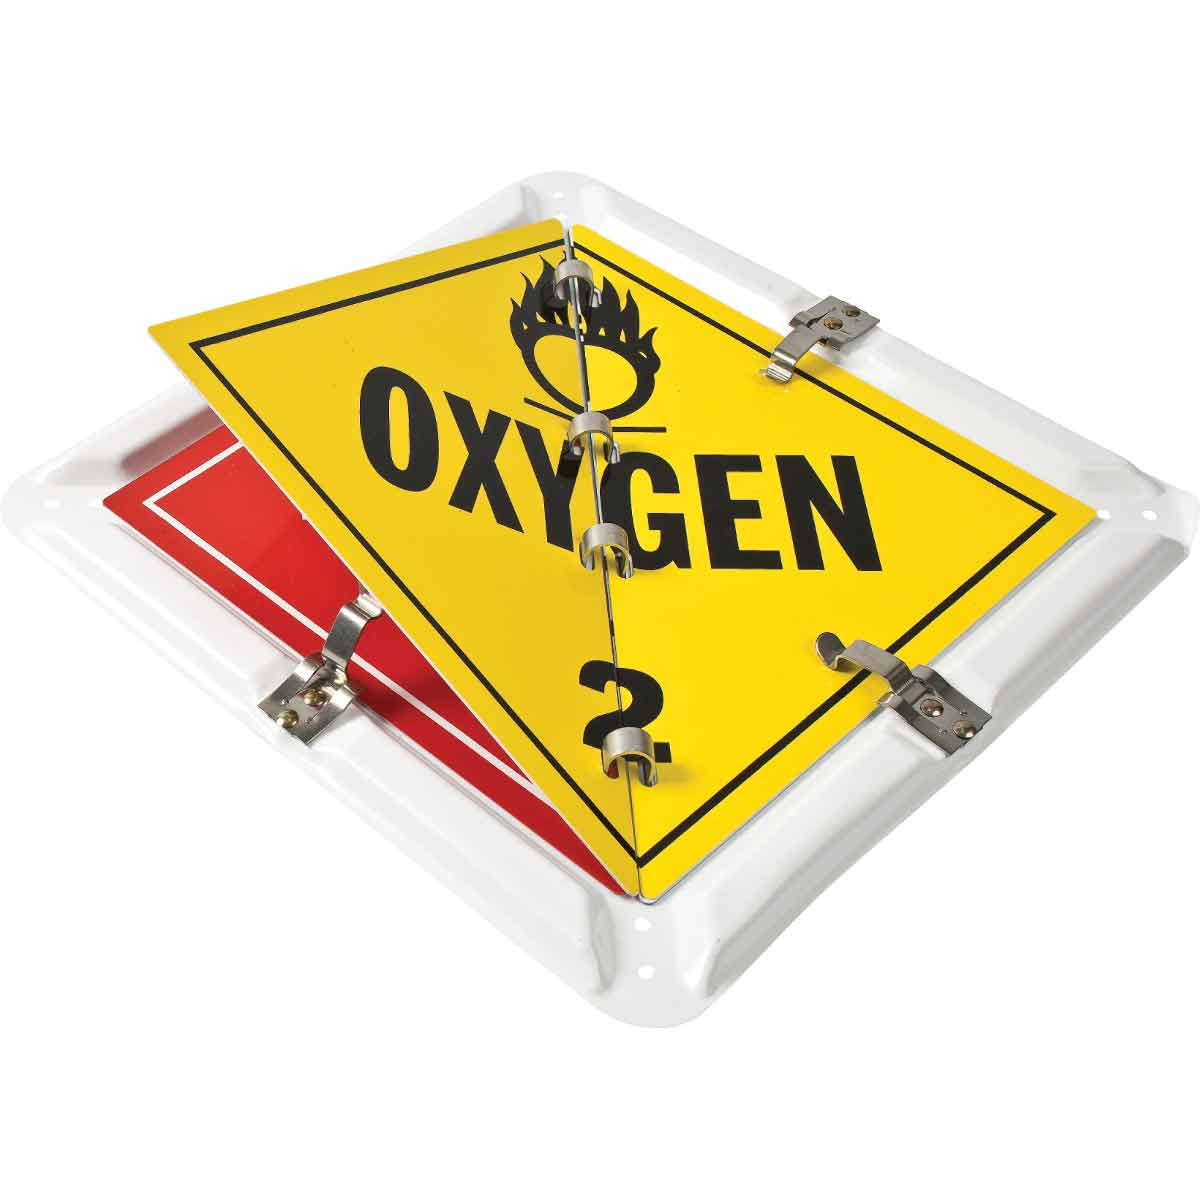 Brady® 63200 Diamond Flip File Placard Sign, BLANK, FLAMMABLE GAS, NON FLAMMABLE GAS, OXYGEN, USED FOR WELDING SUPPLY AND MEDIUM VAN Legend, Assorted, 13-5/8 in H, Aluminum